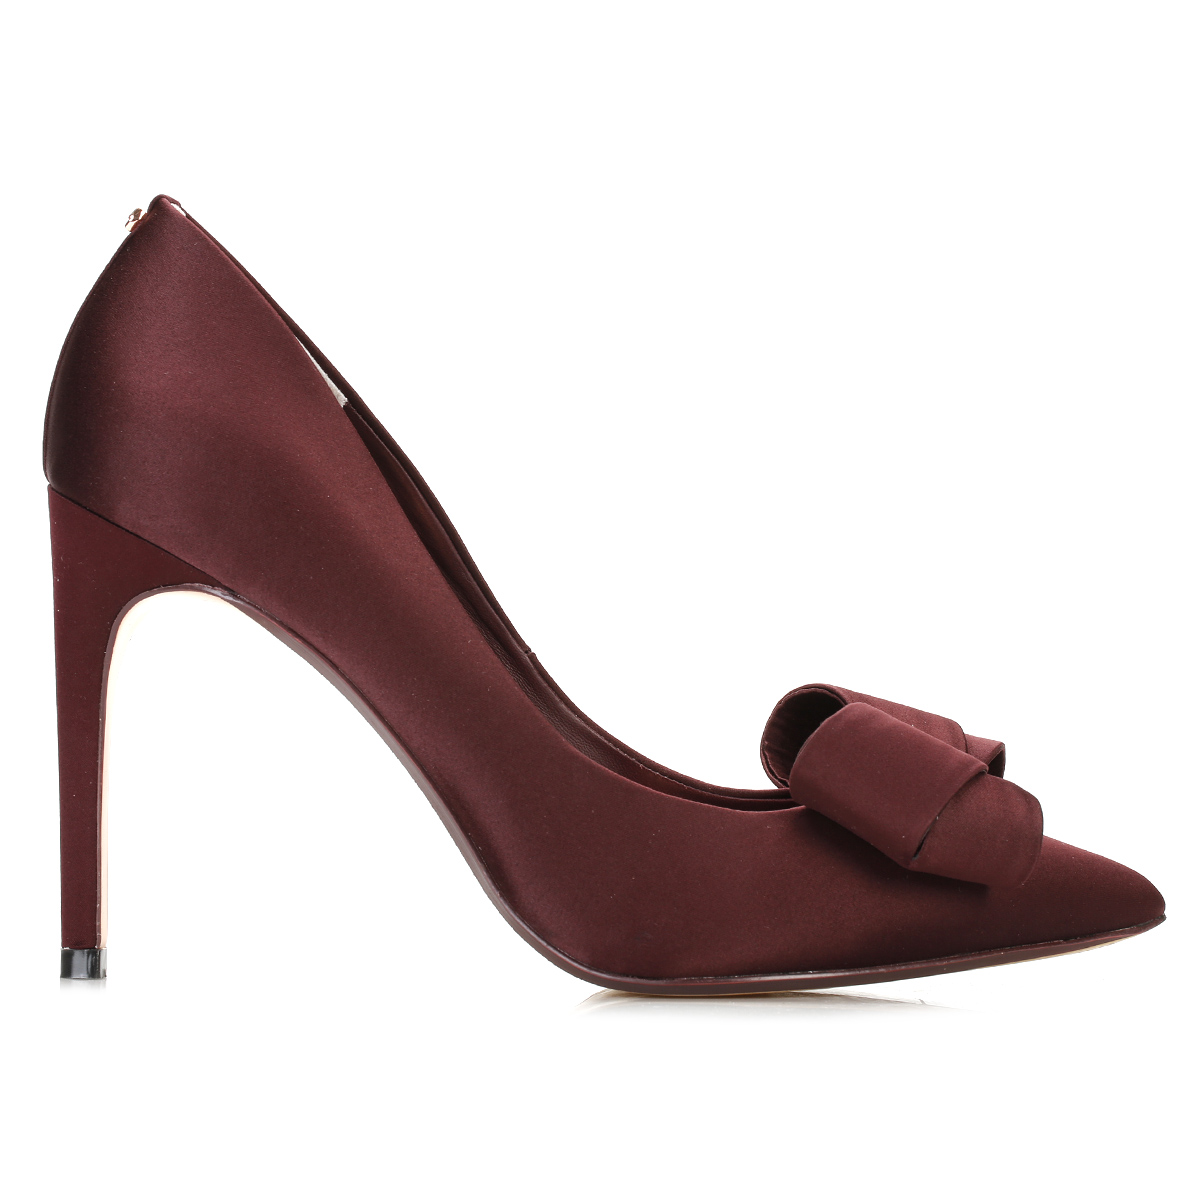 ted baker womens court shoes burgundy stiletto high